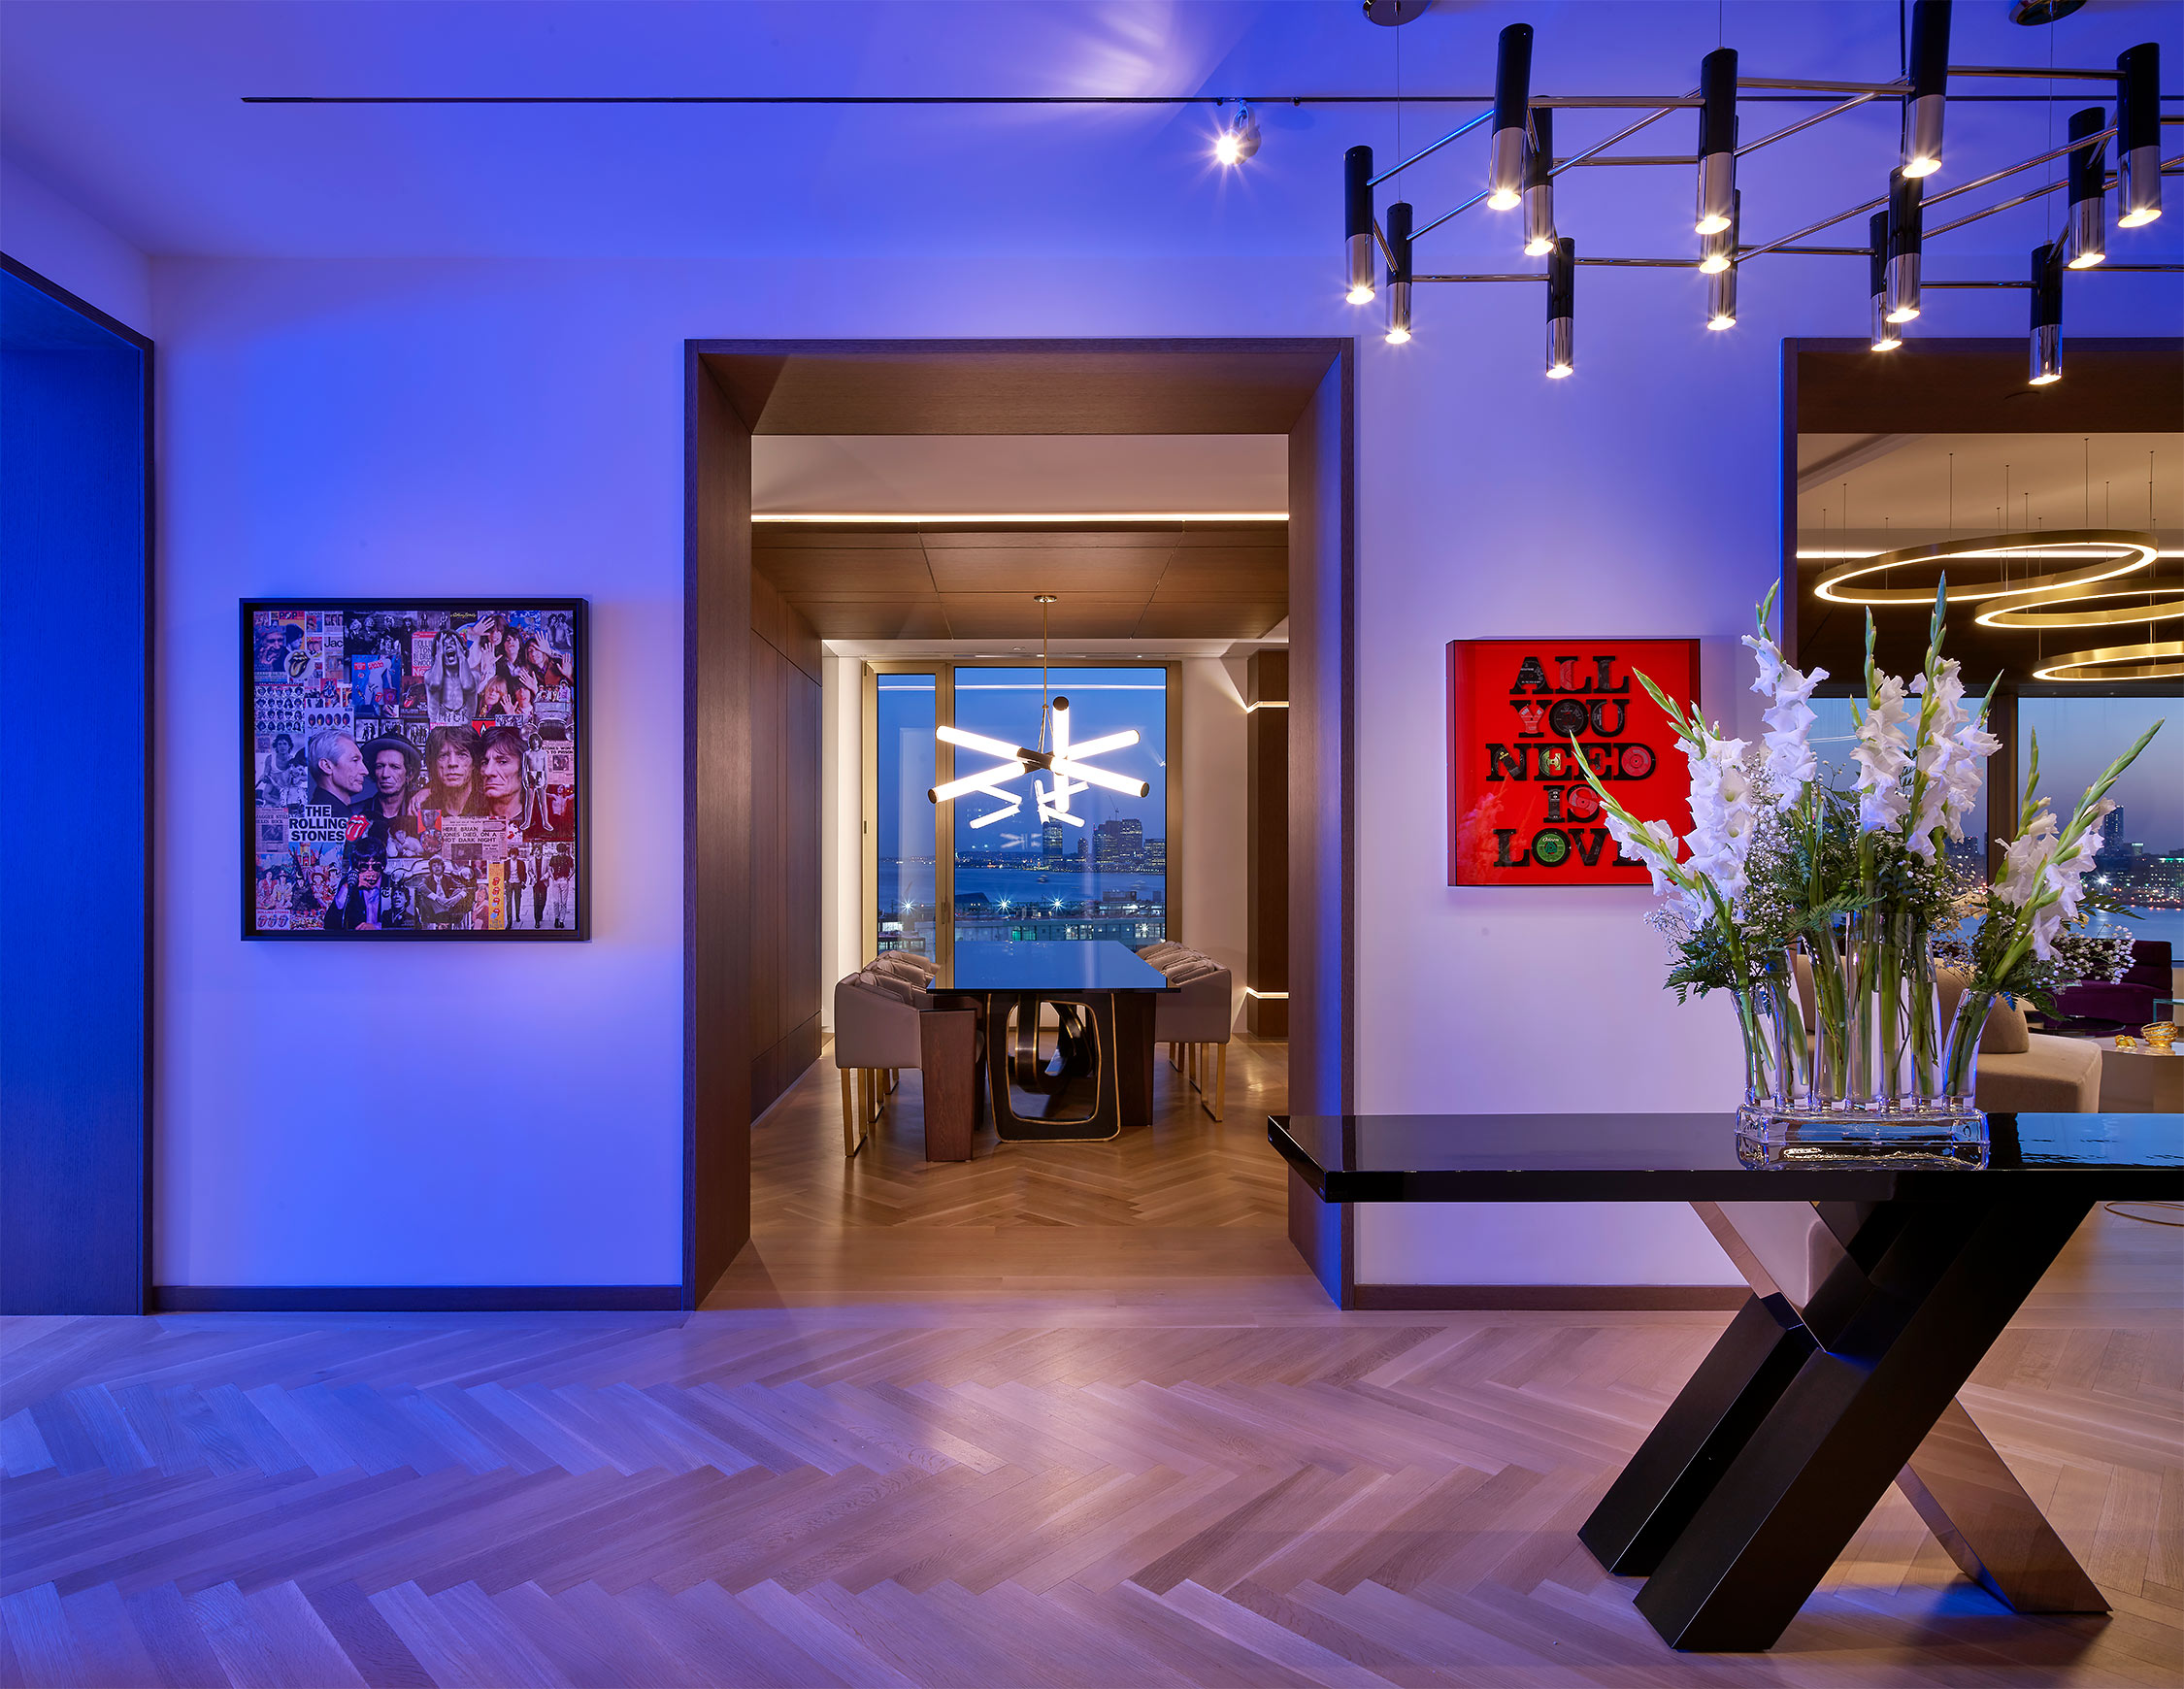 New-York-City-Contemporary-Interior-Photography-Pepe-Calderin-Design